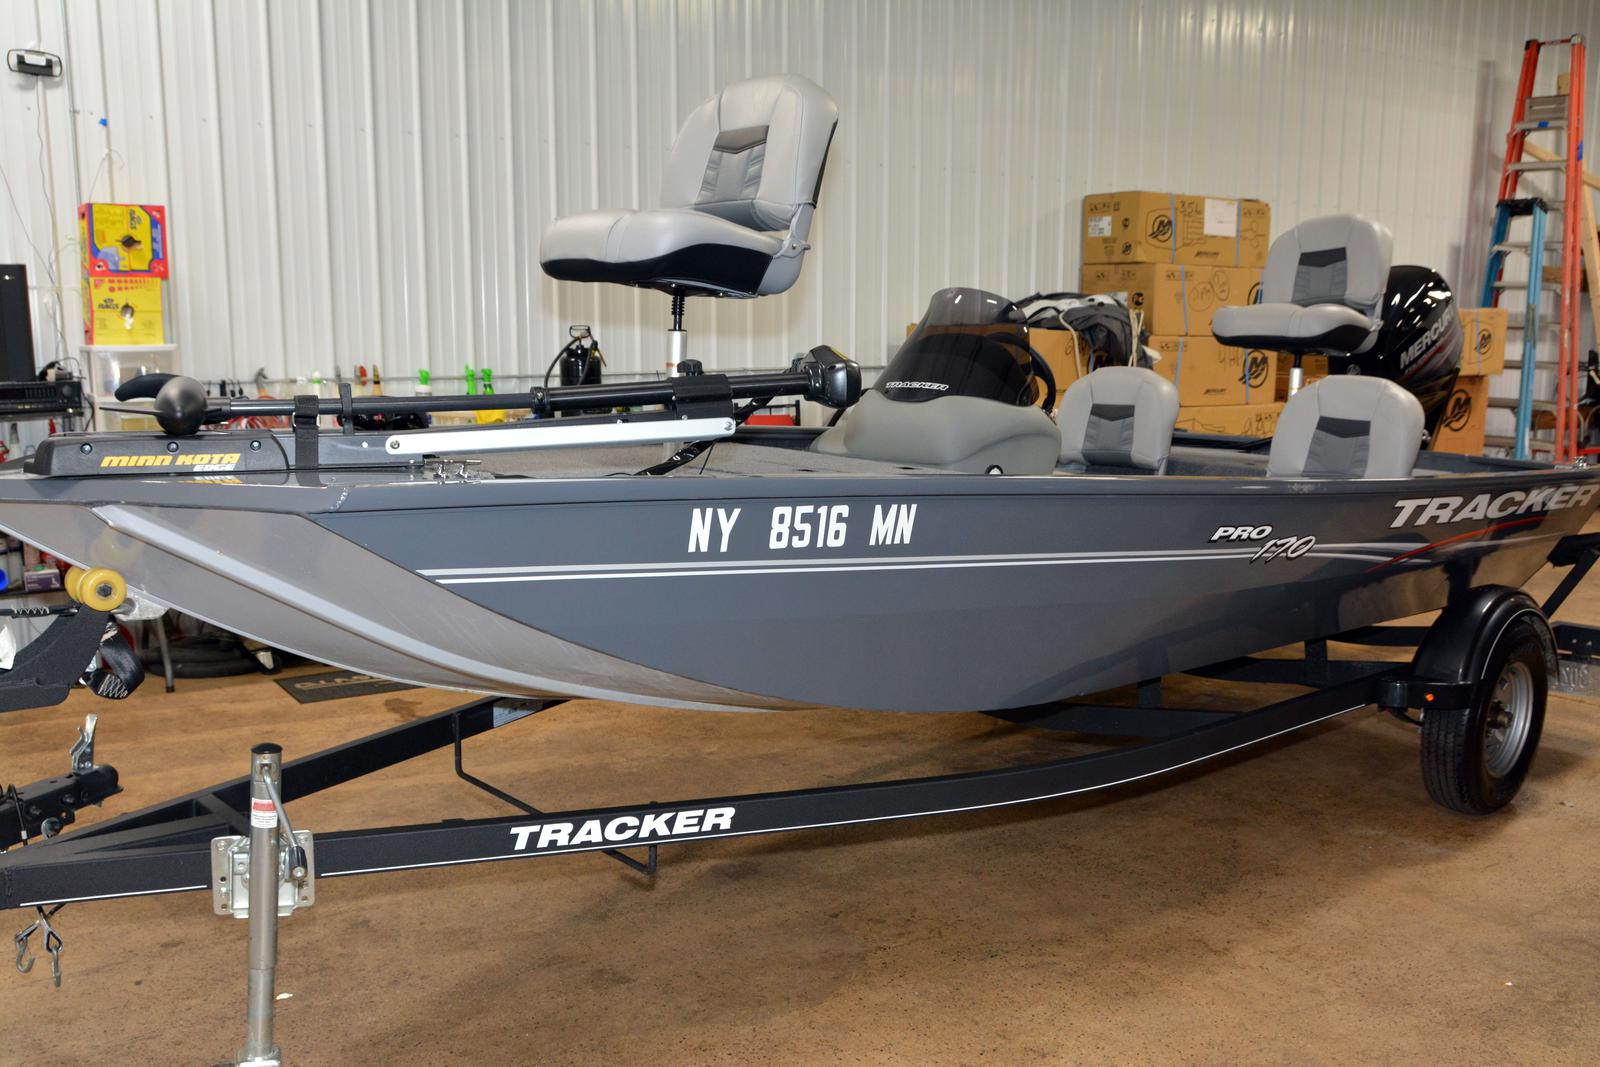 Inventory from Tracker Bryce Marine Rochester, NY (585) 352-9485